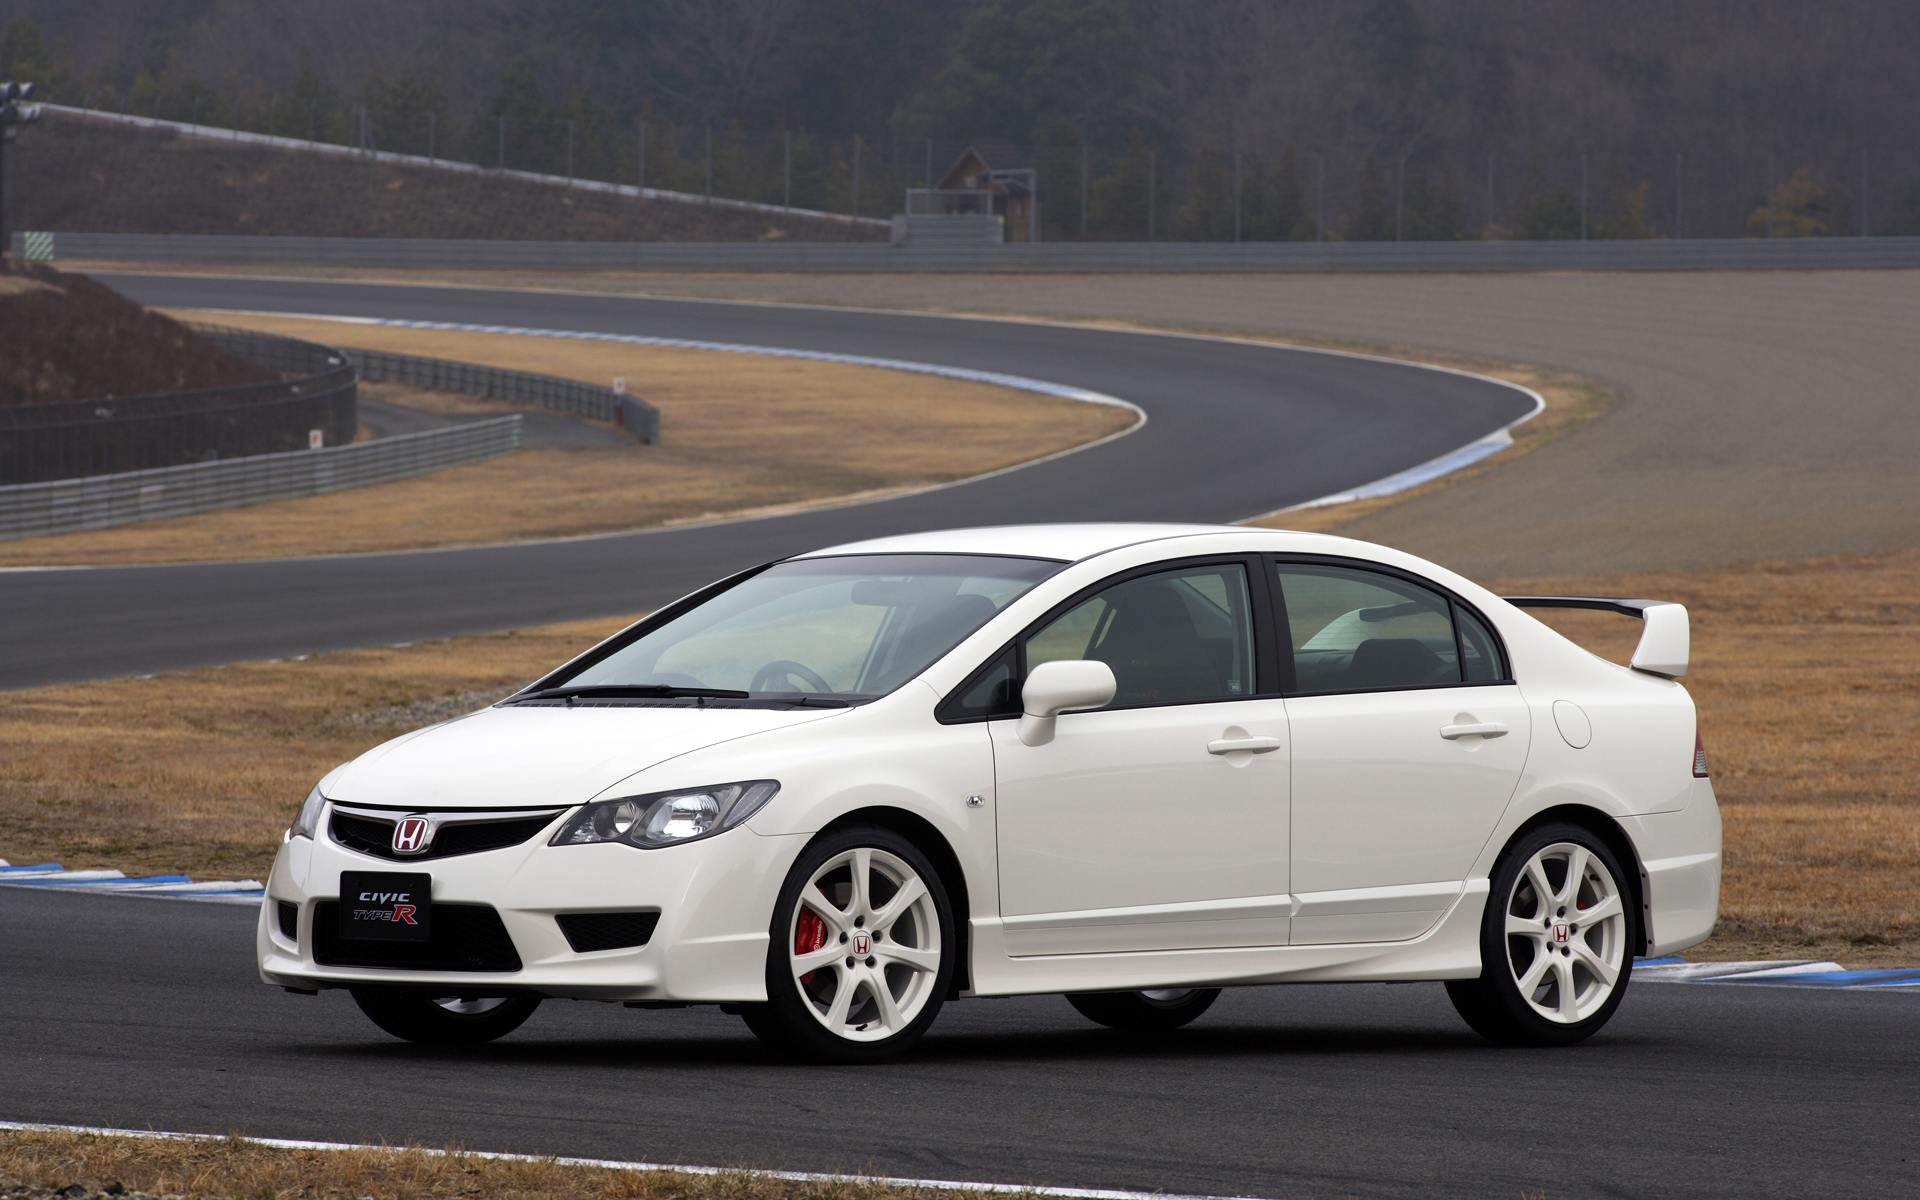 Honda Phone Wallpapers Honda Civic Wallpapers Wallpaper Cave